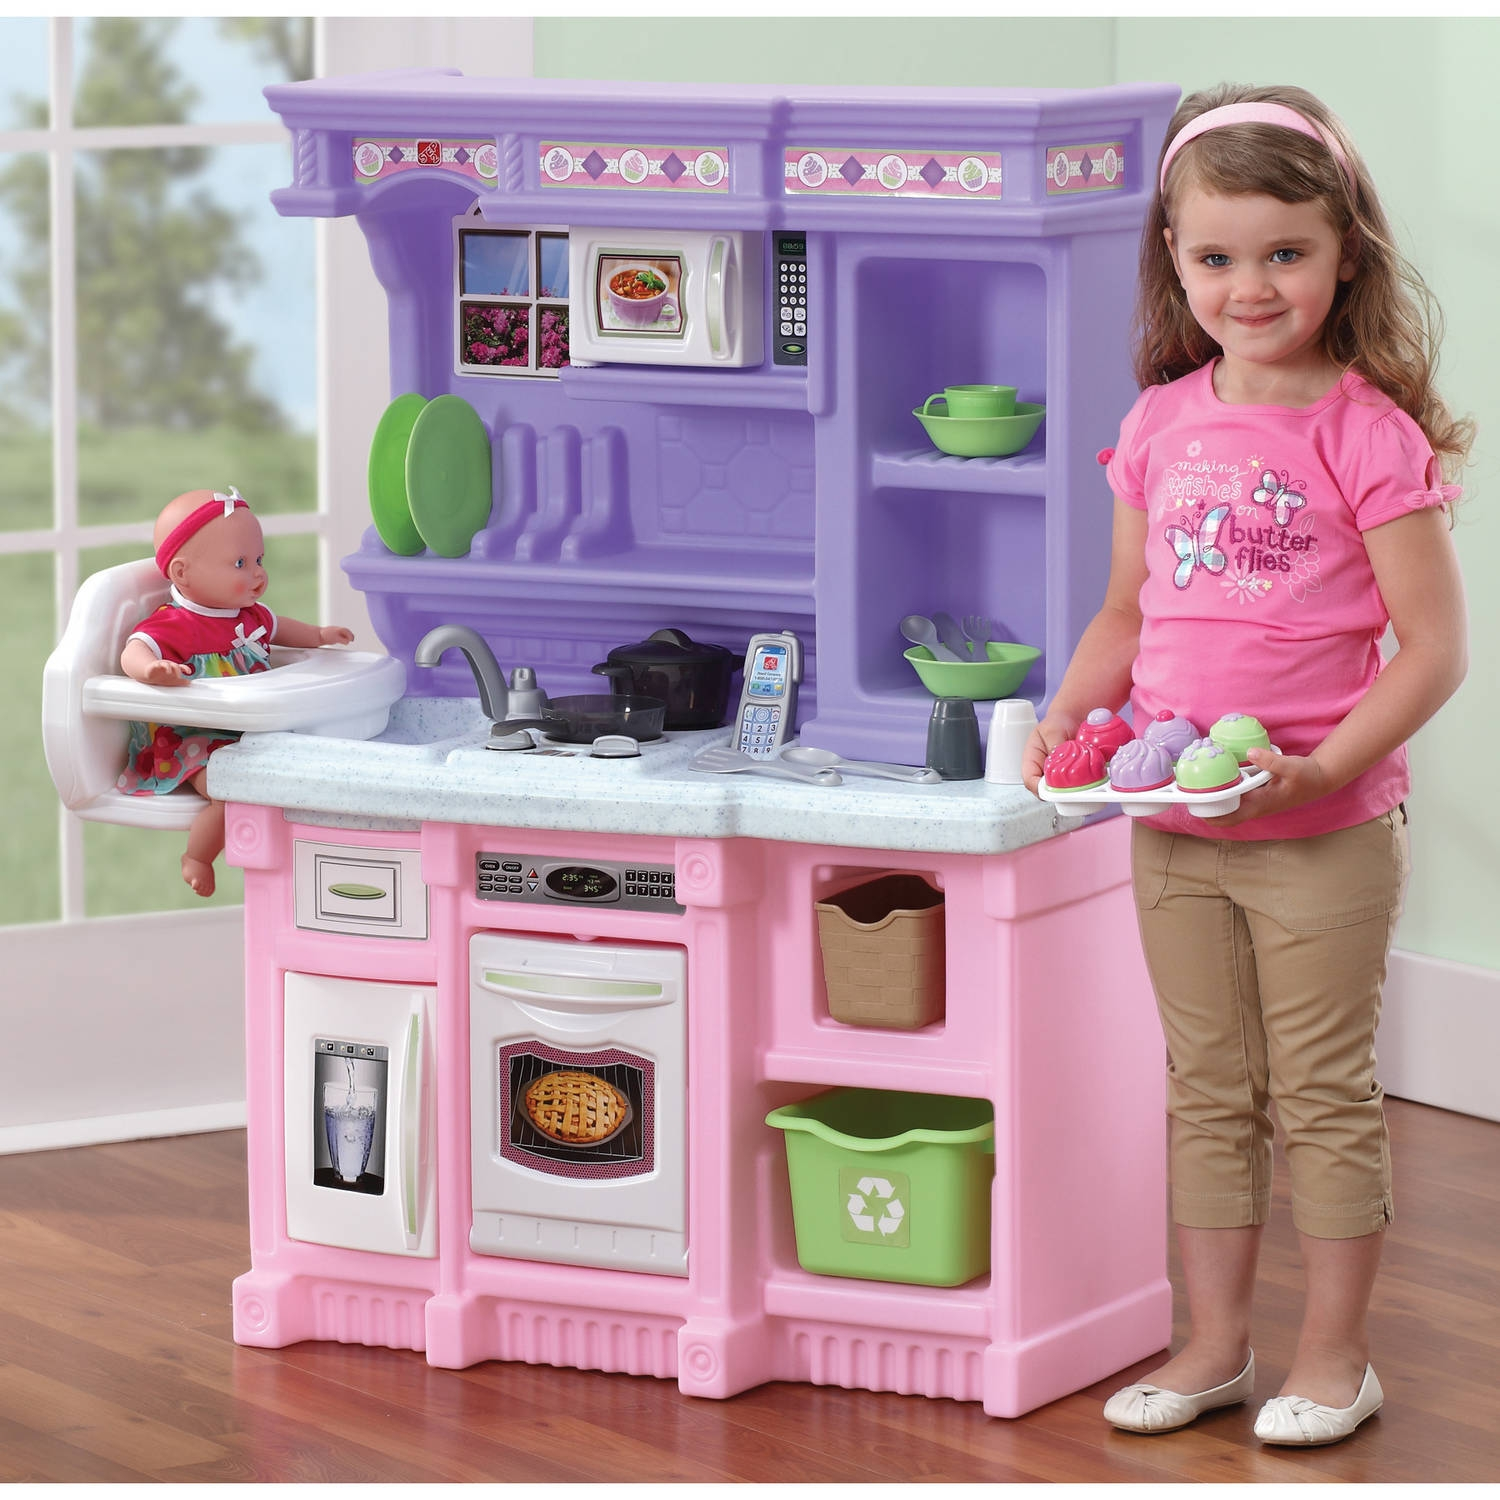 Best Kitchen Set For Toddlers